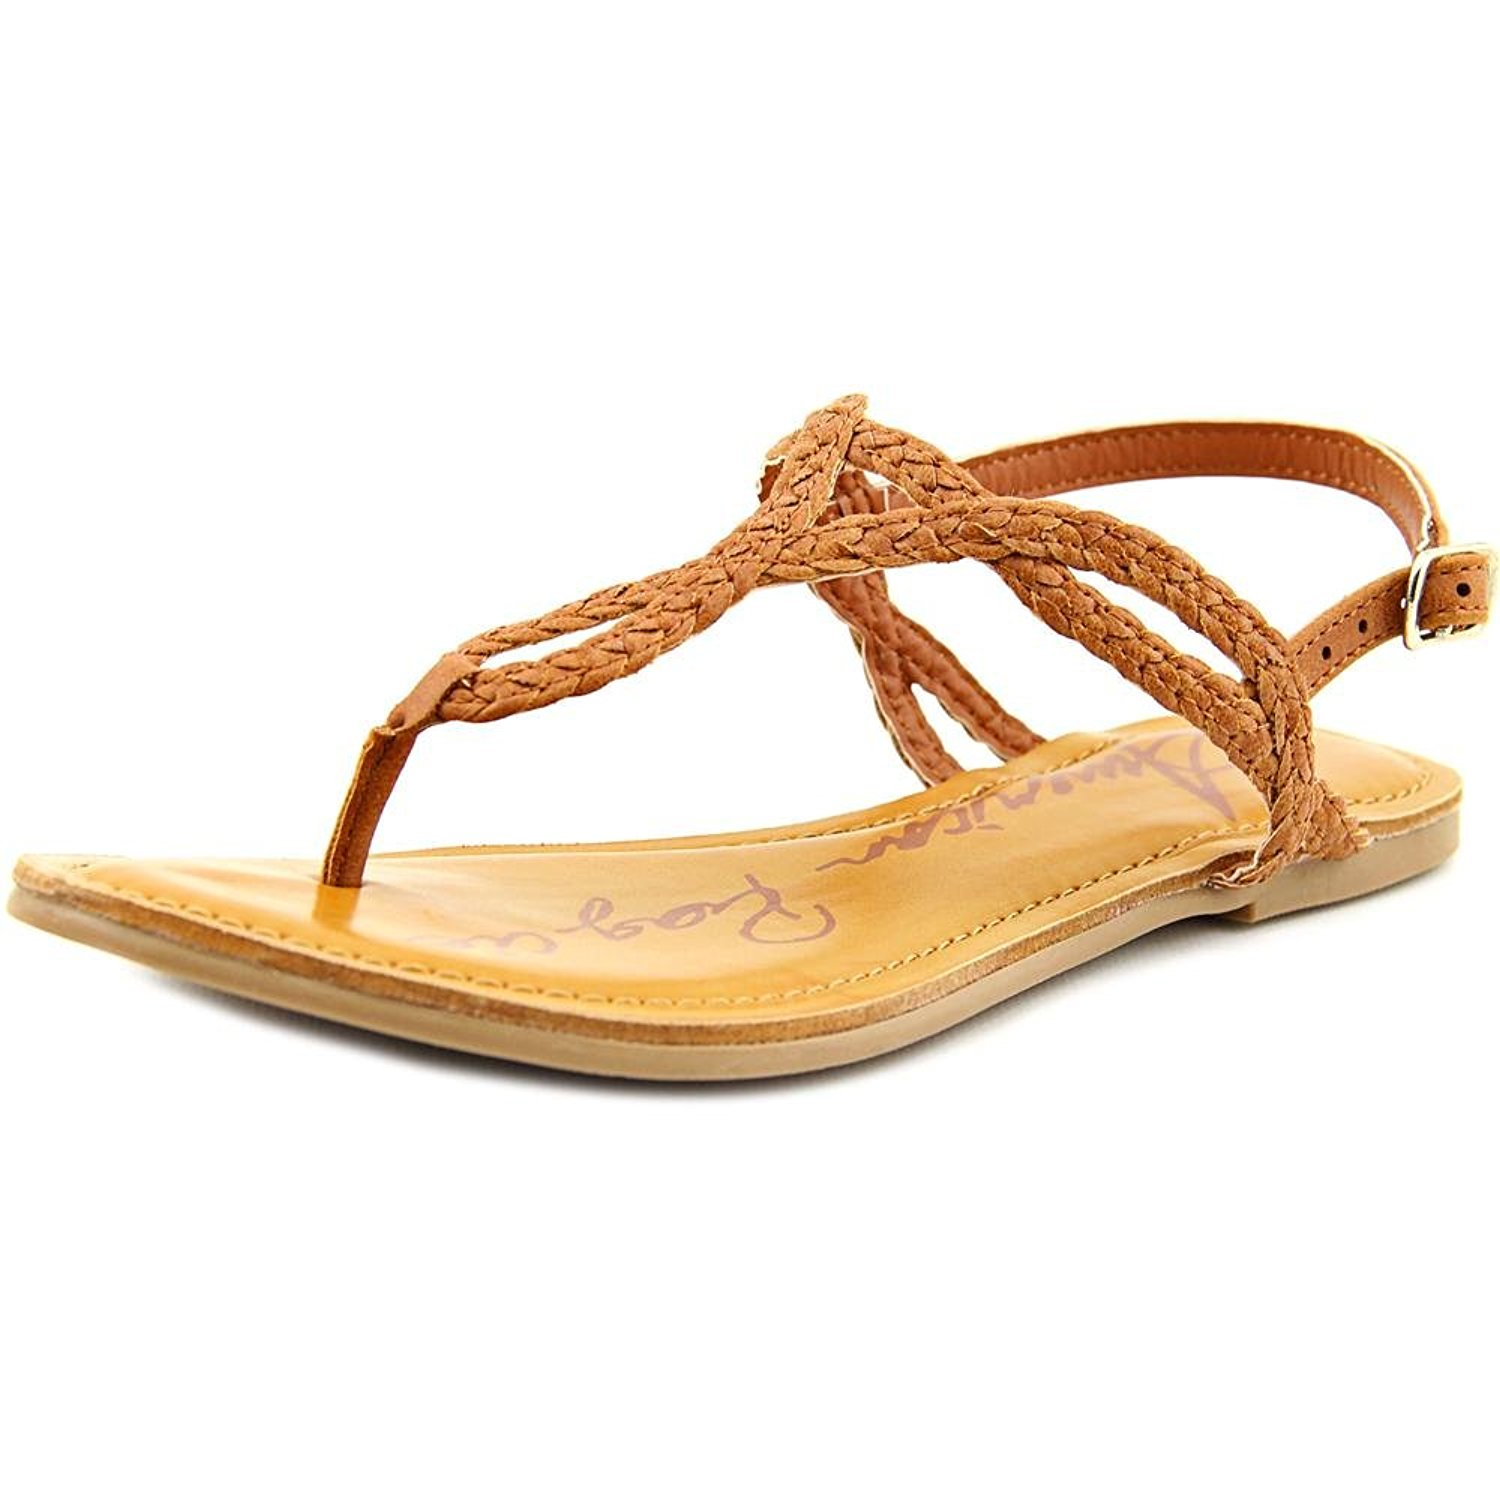 90376437e33b American Rag Keira Womens Flat Sandals Cognac 8.5 US   6.5 UK ...